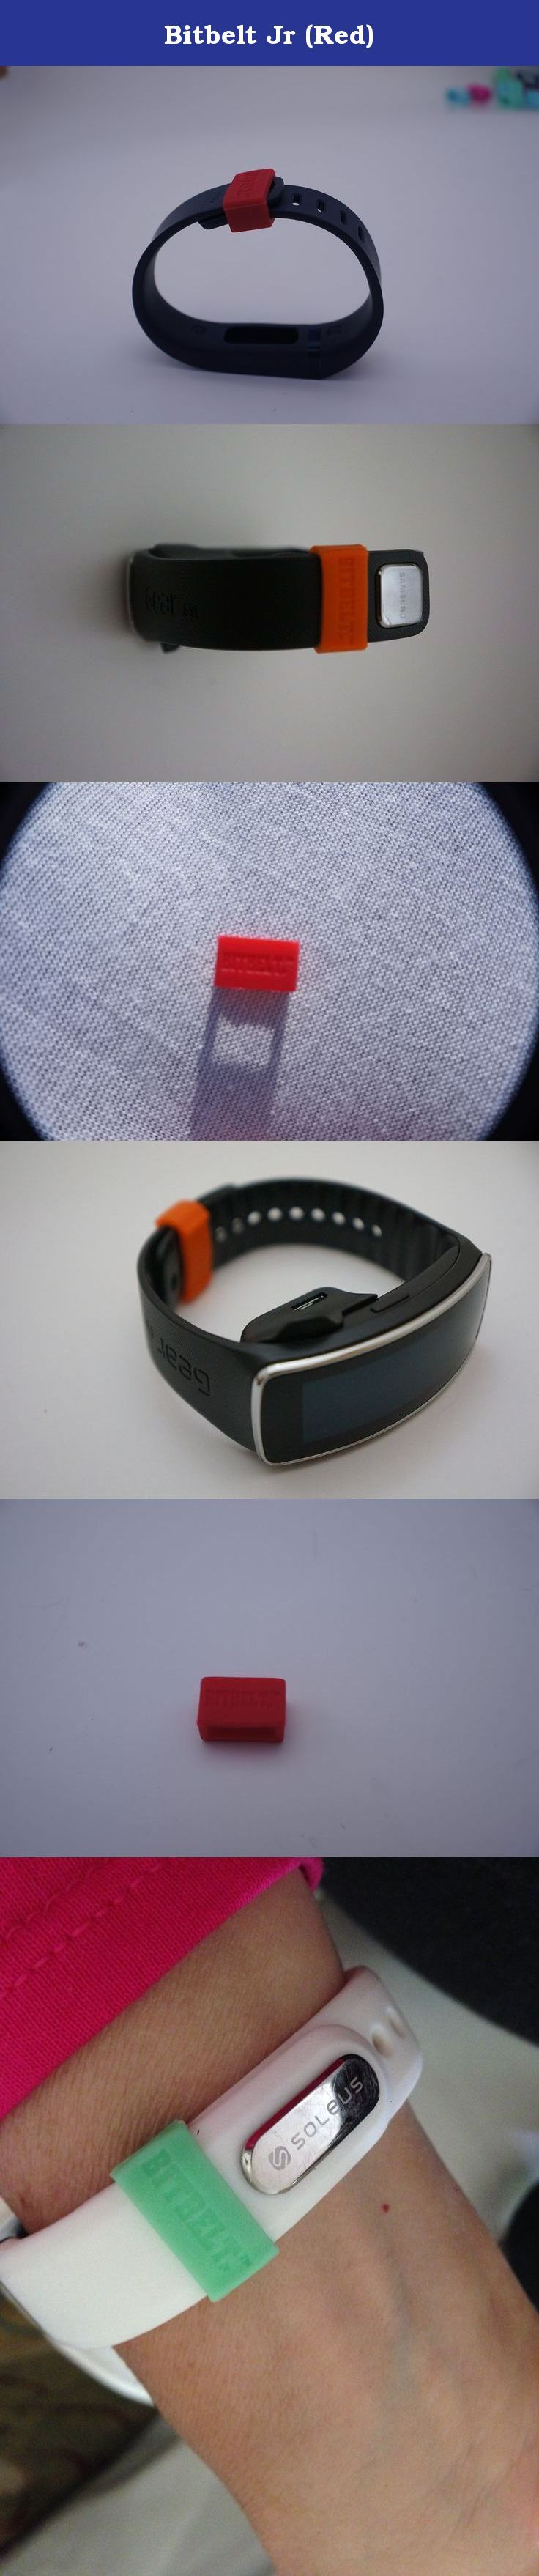 Bitbelt Jr (Red). BITBELT JR CREATED TO PROTECT YOUR THINNER WIDTH WRIST WORN FITNESS TRACKER AND CHILD SIZE MAGIC BAND. DONT RELY ON A SMALL PLASTIC CLIP TO SECURE YOUR INVESTMENT TO HEALTH OR YOUR VACATION.WE ARE THE CHEAPEST INSURANCE AVAILABLE. Your bracelet will come unclasped. We are the cheapest insurance available to keep yours from being lost.